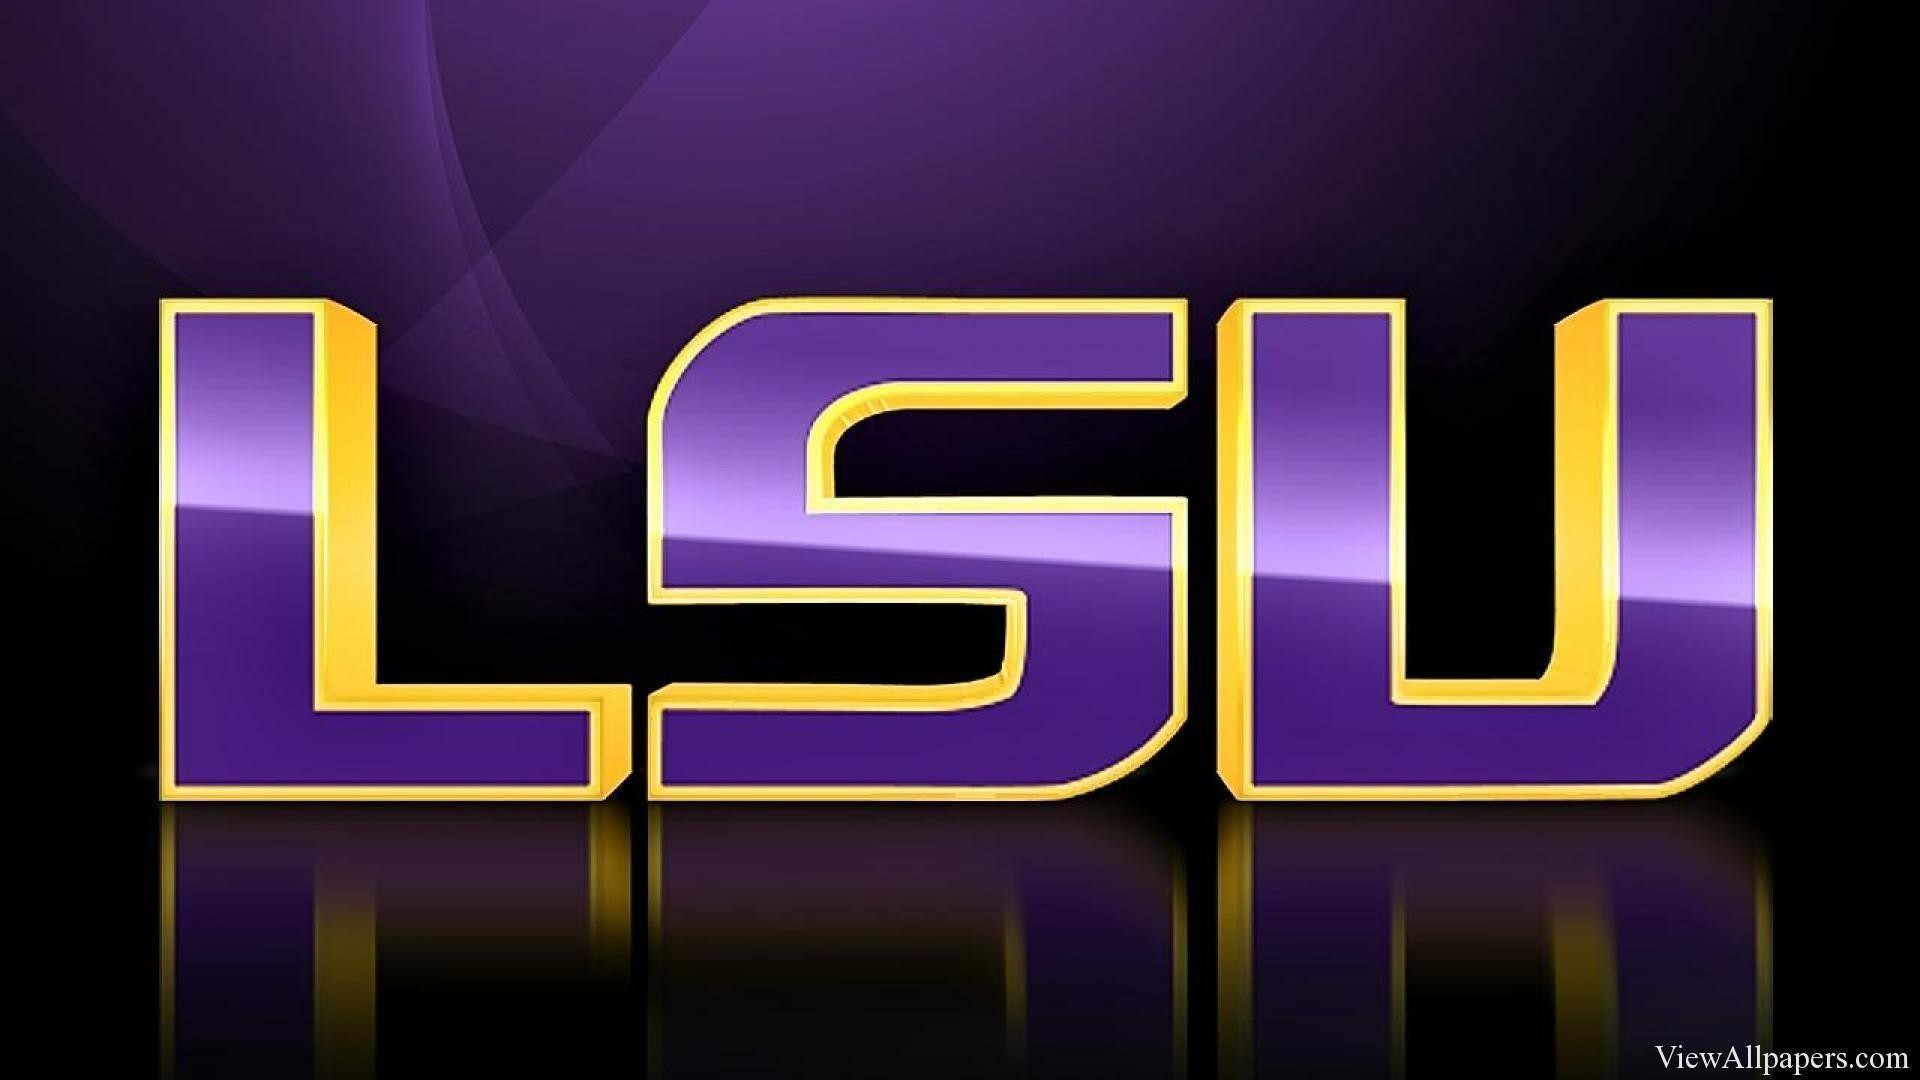 1920x1080 Lsu Football Wallpapers 2015 - Wallpaper Cave